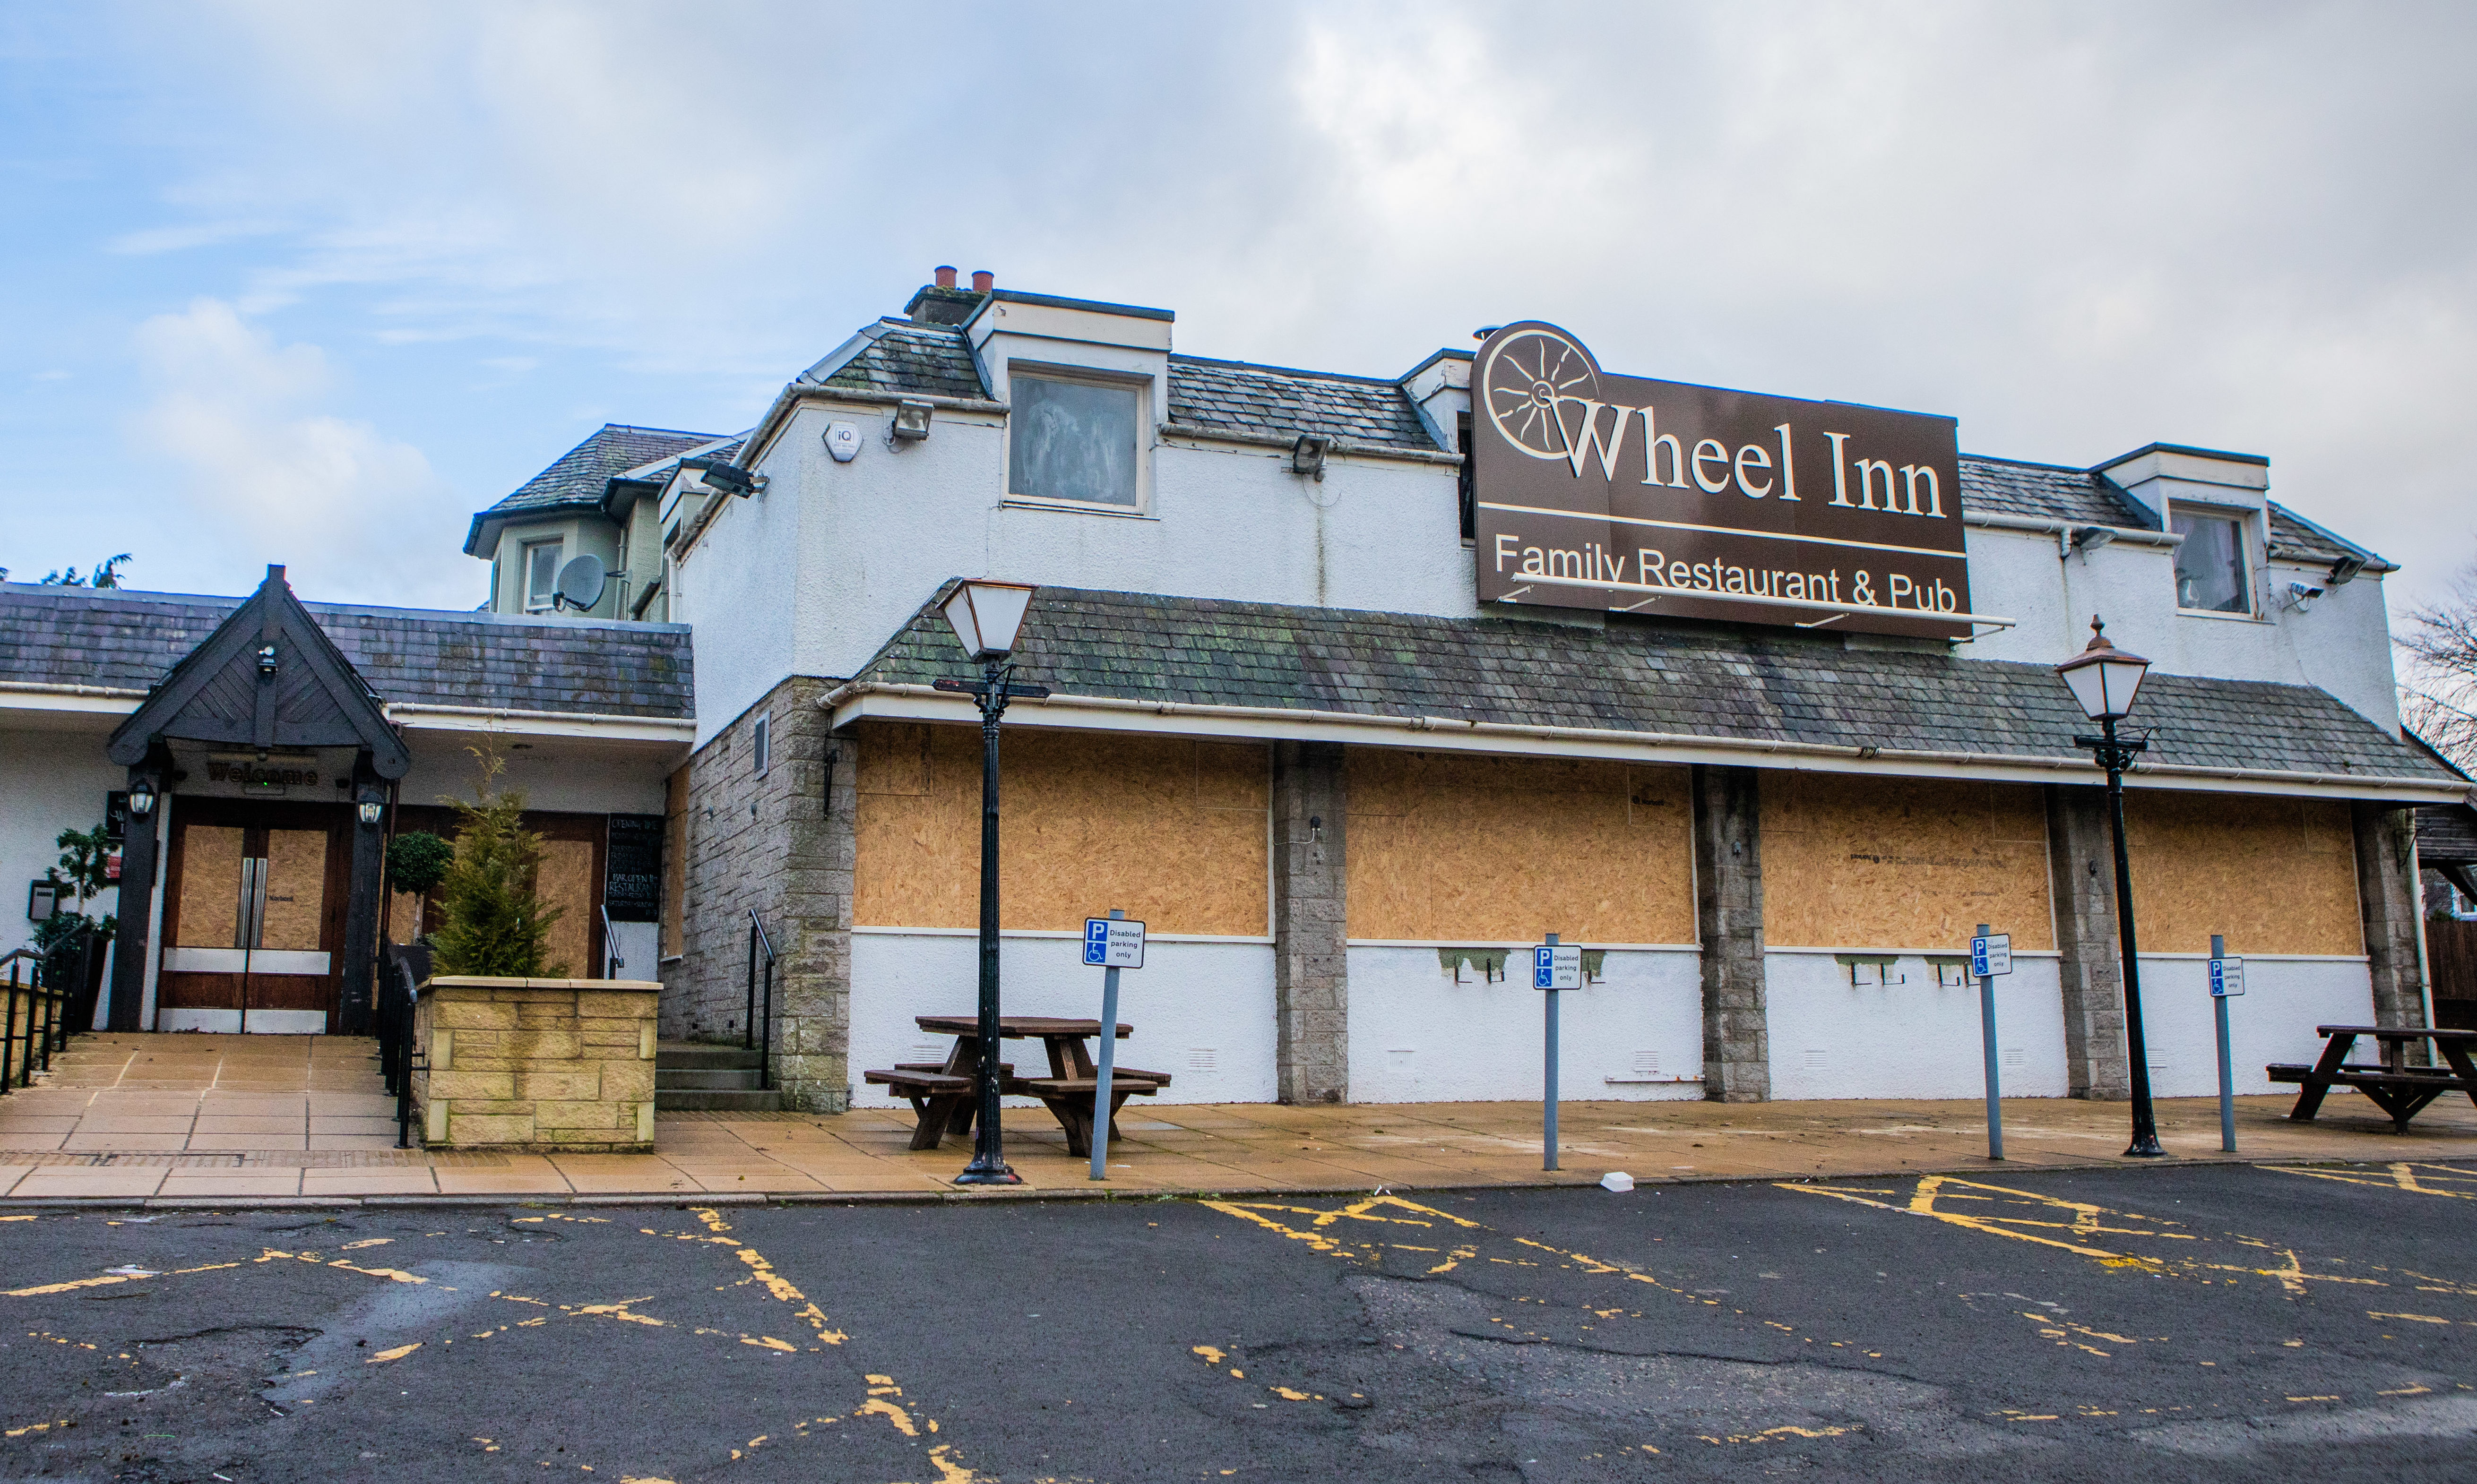 The Wheel Inn, Scone, all boarded up.